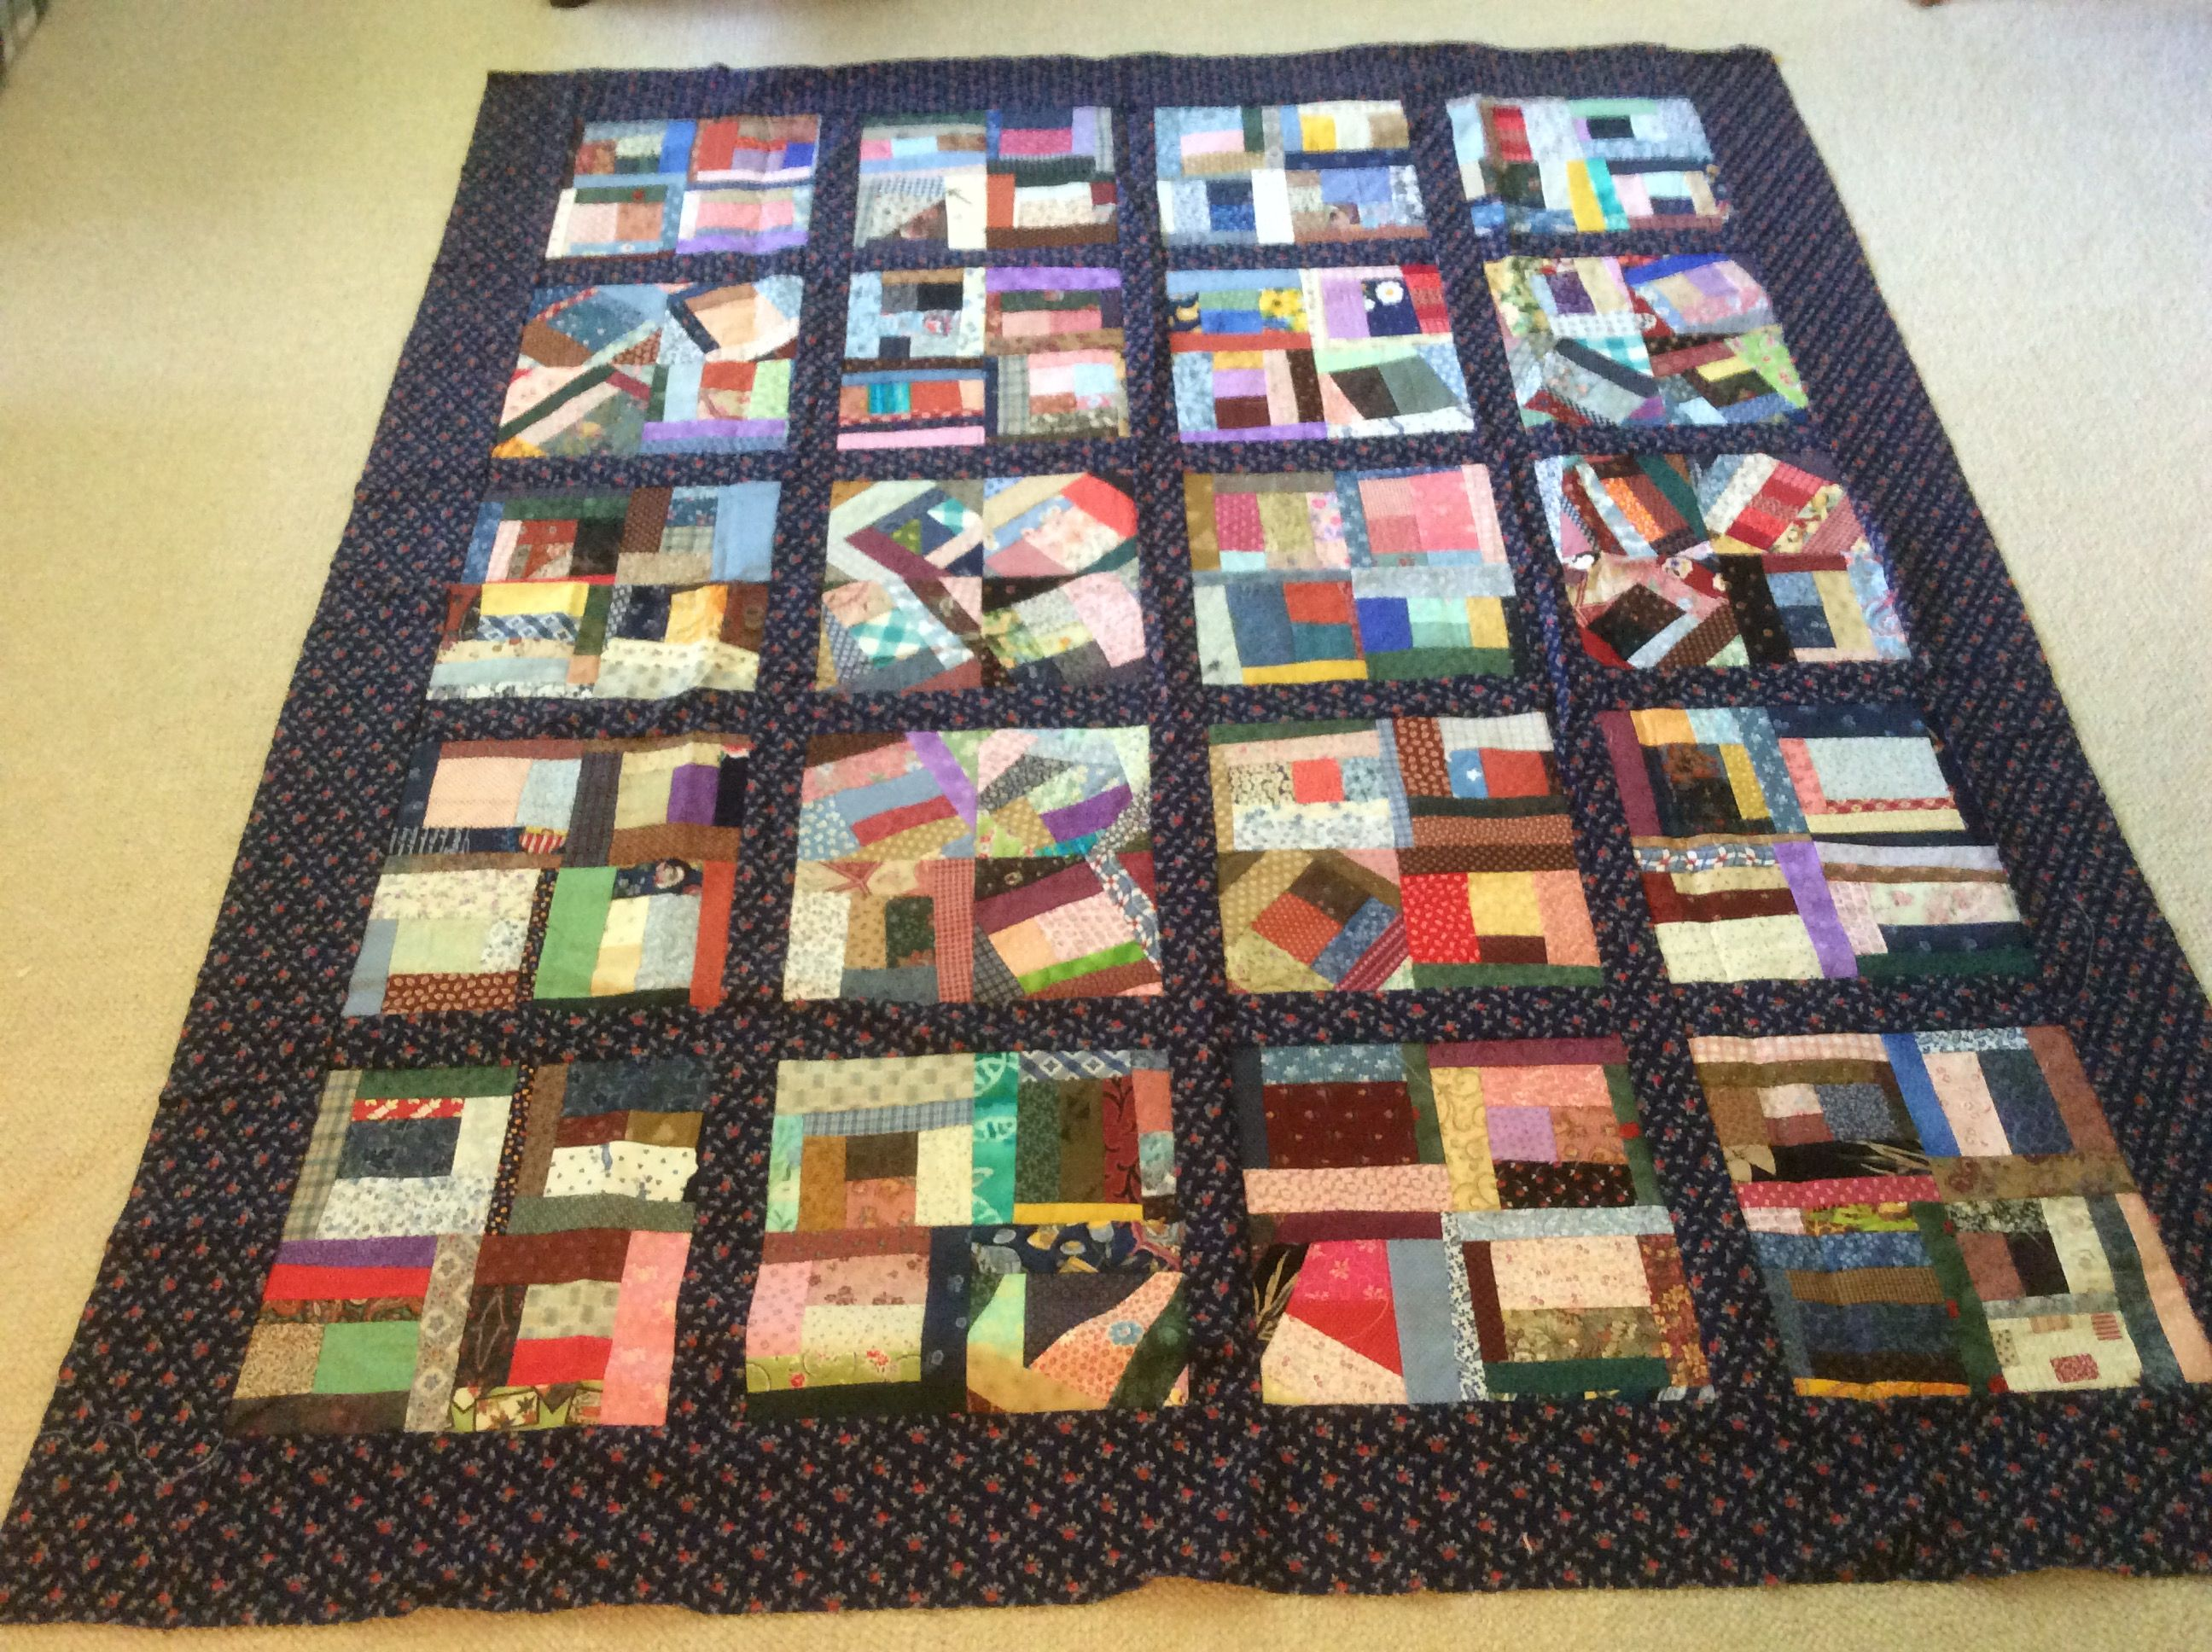 Crumb quilt made by Sharon Theriault